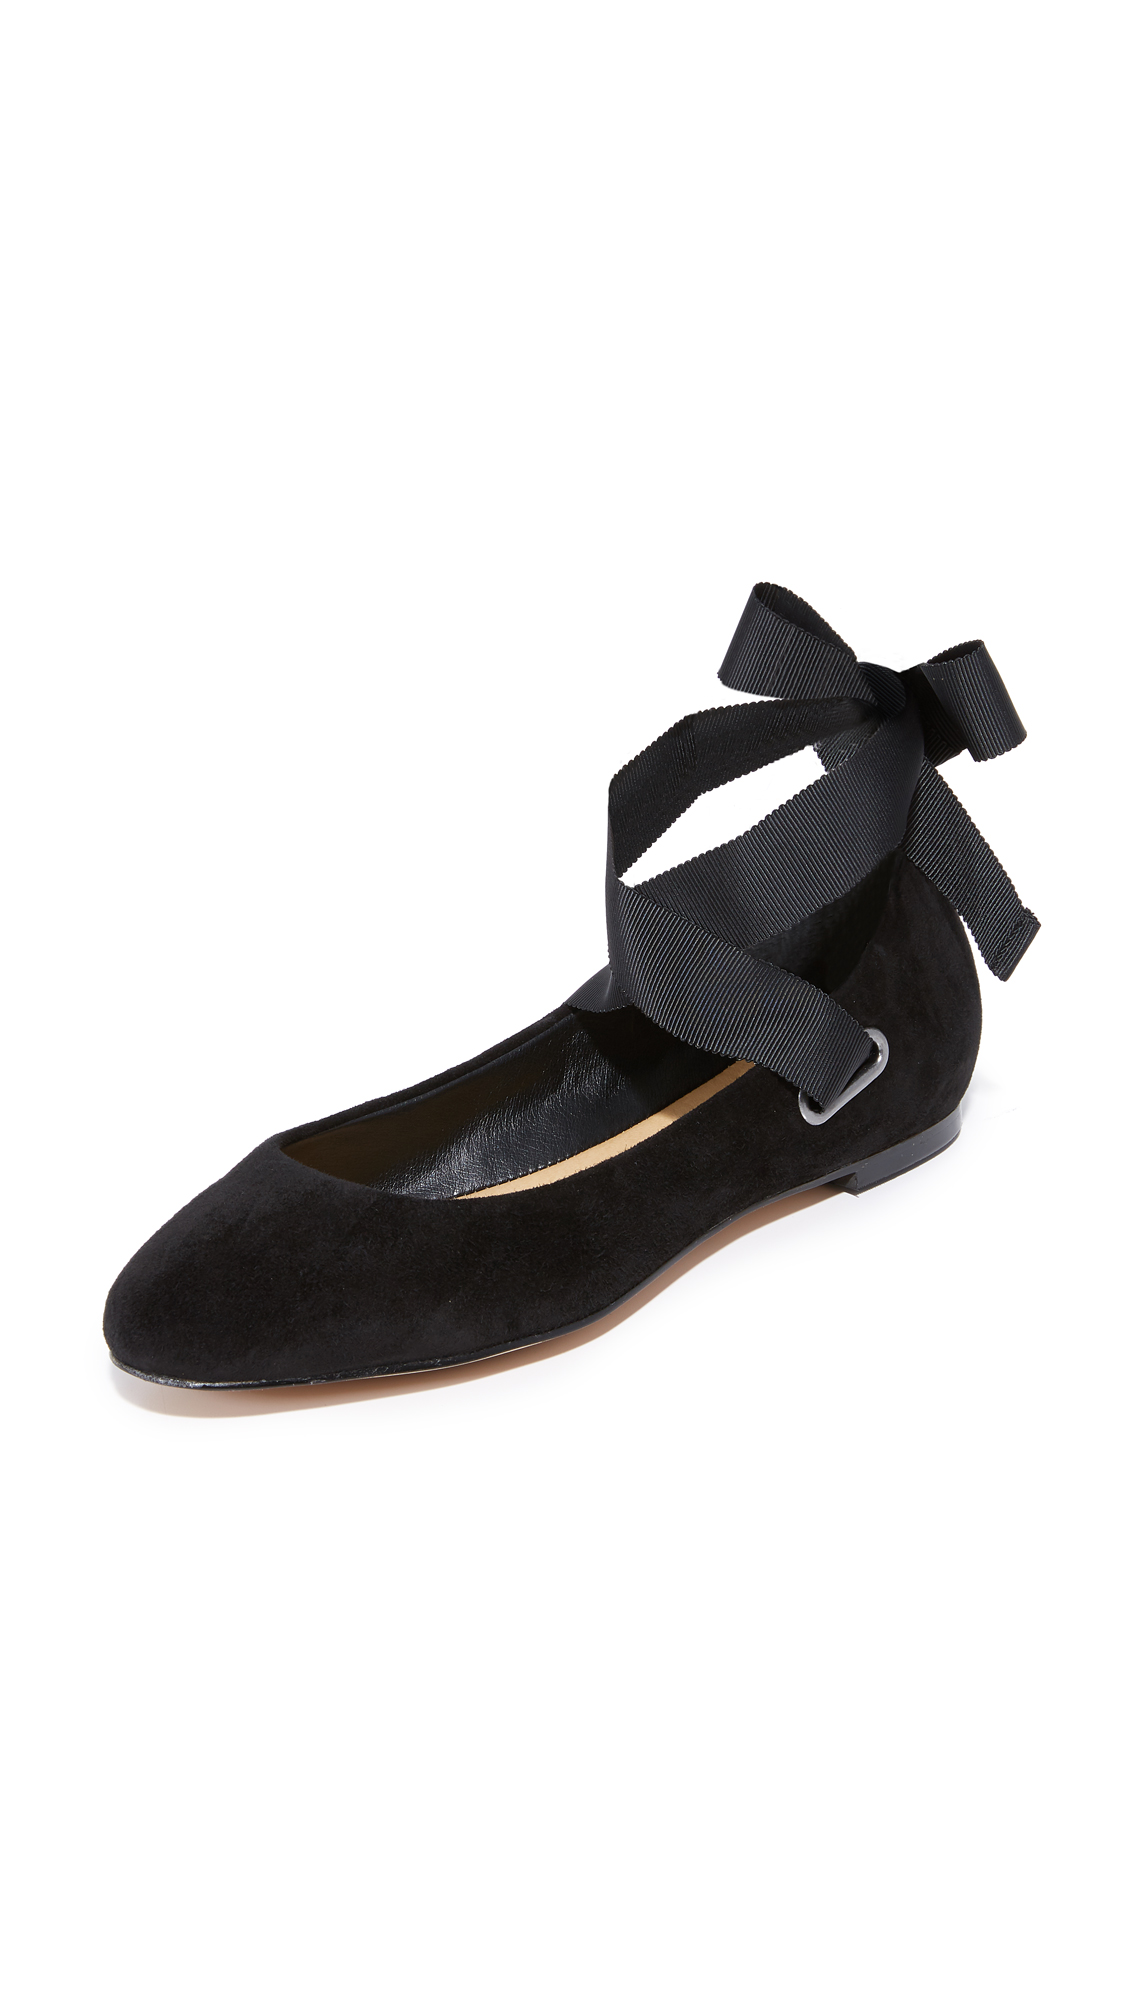 Splendid Renee Wrap Ballet Flats - Black